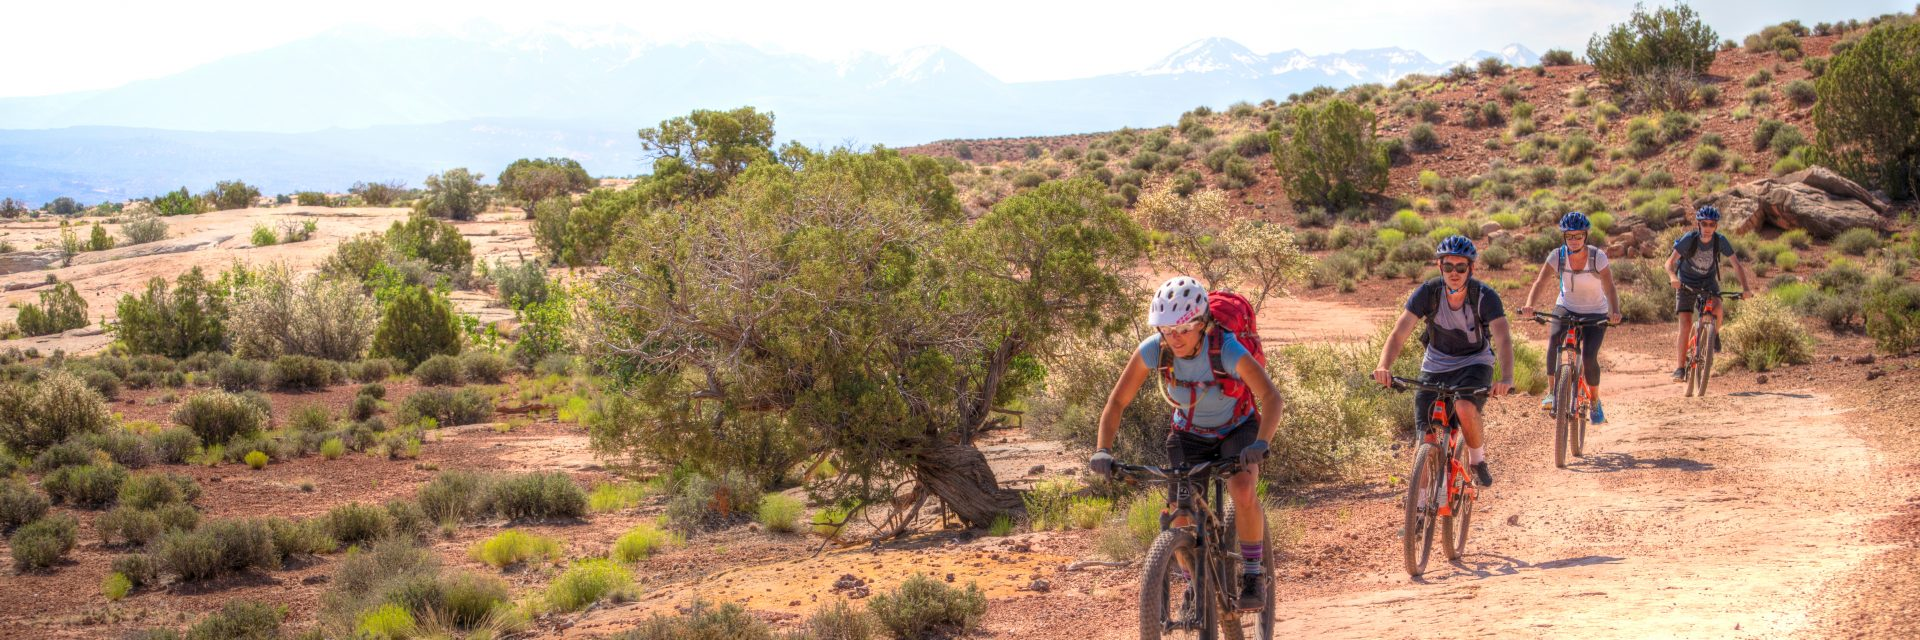 A guide leads mountain bike riders on a guided tour of the Courthouse Loop Trail north of Moab UT